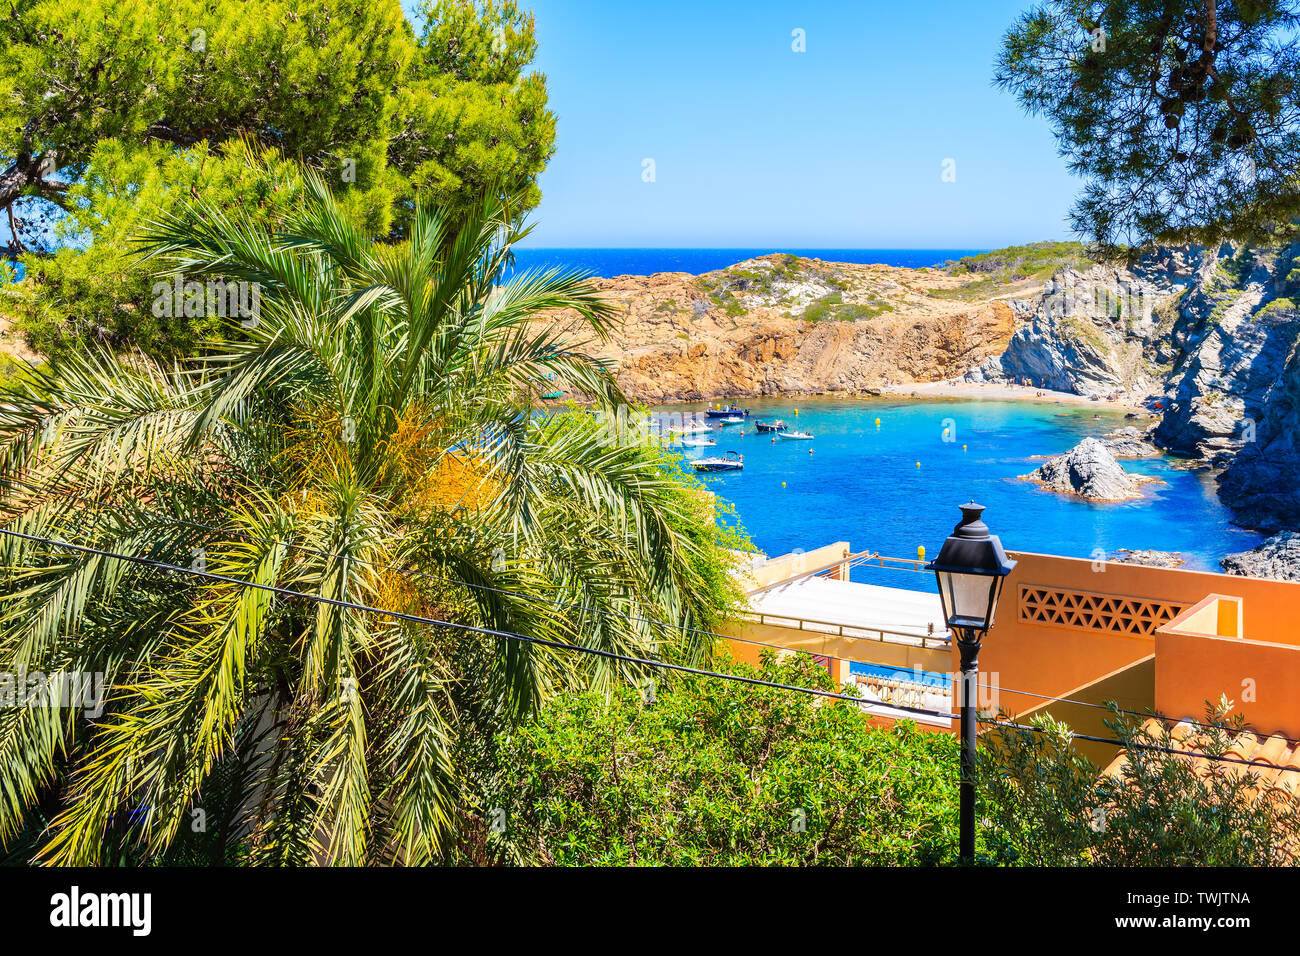 View of  Sa Tuna sea bay with palm tree leaves in foreground, Costa Brava, Spain Stock Photo